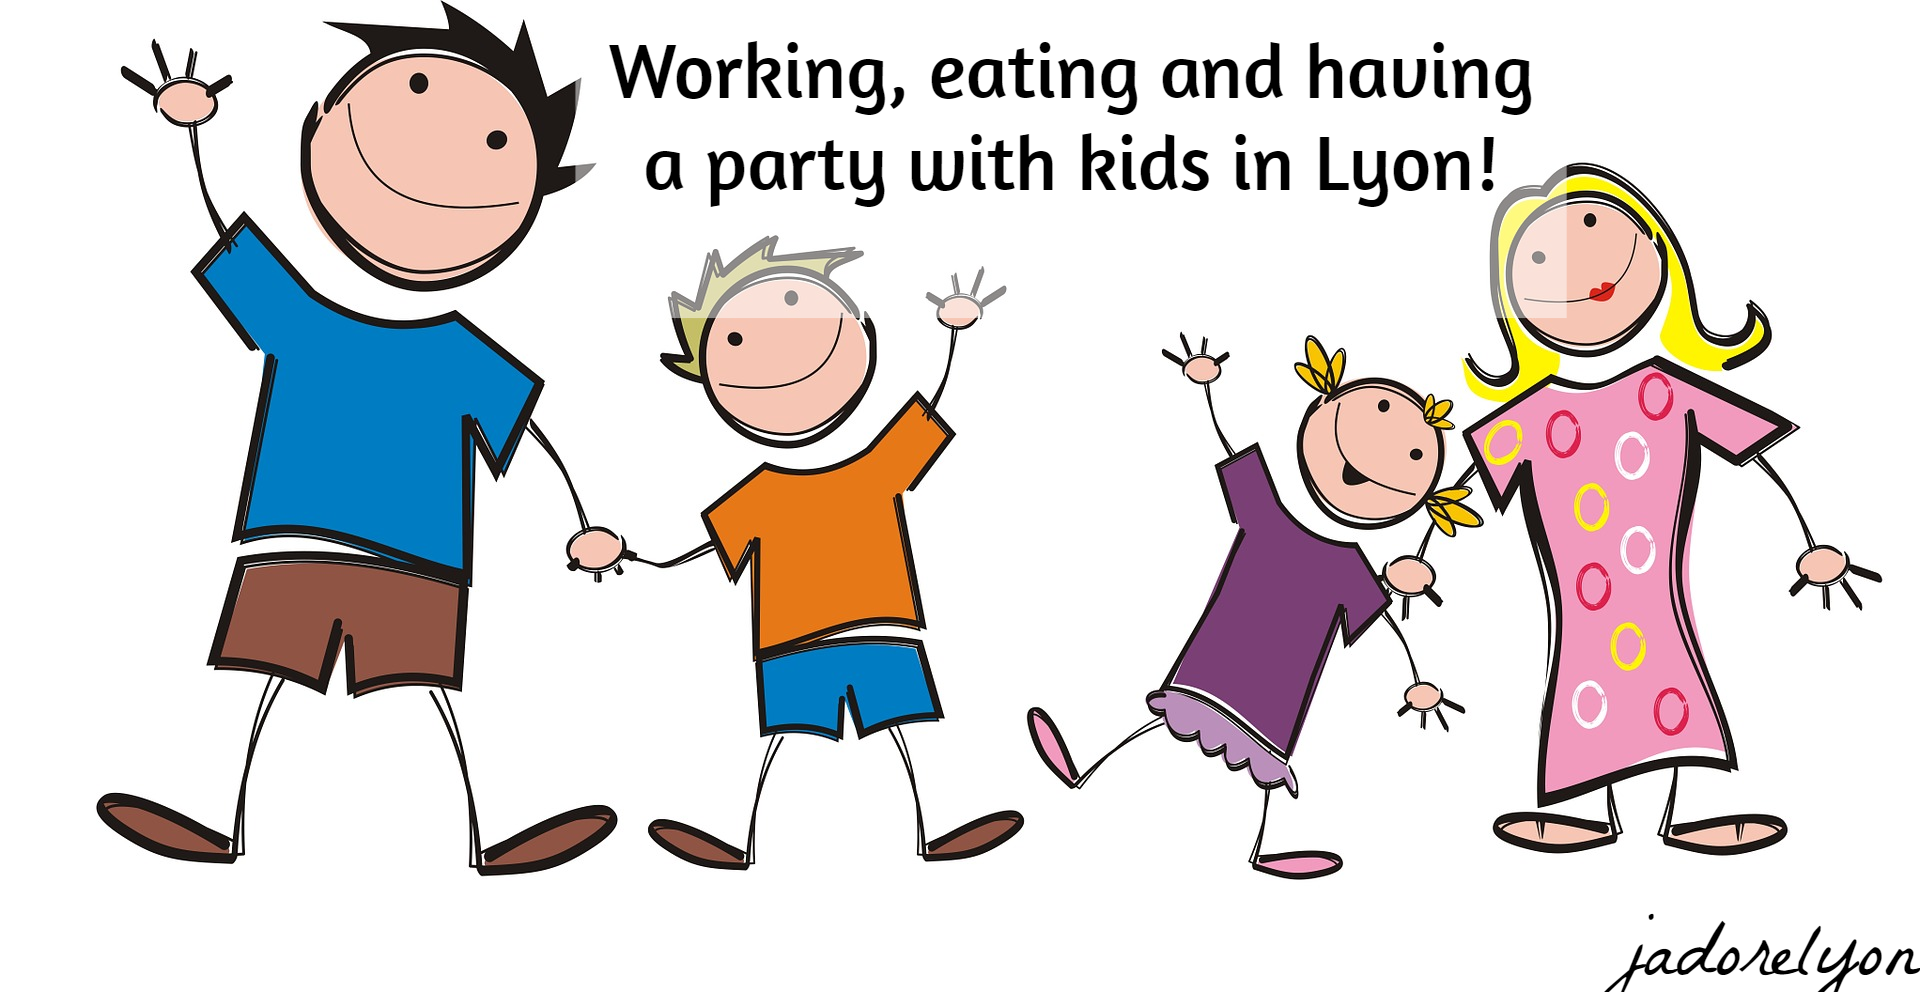 Working, eating and having a party with kids in Lyon!